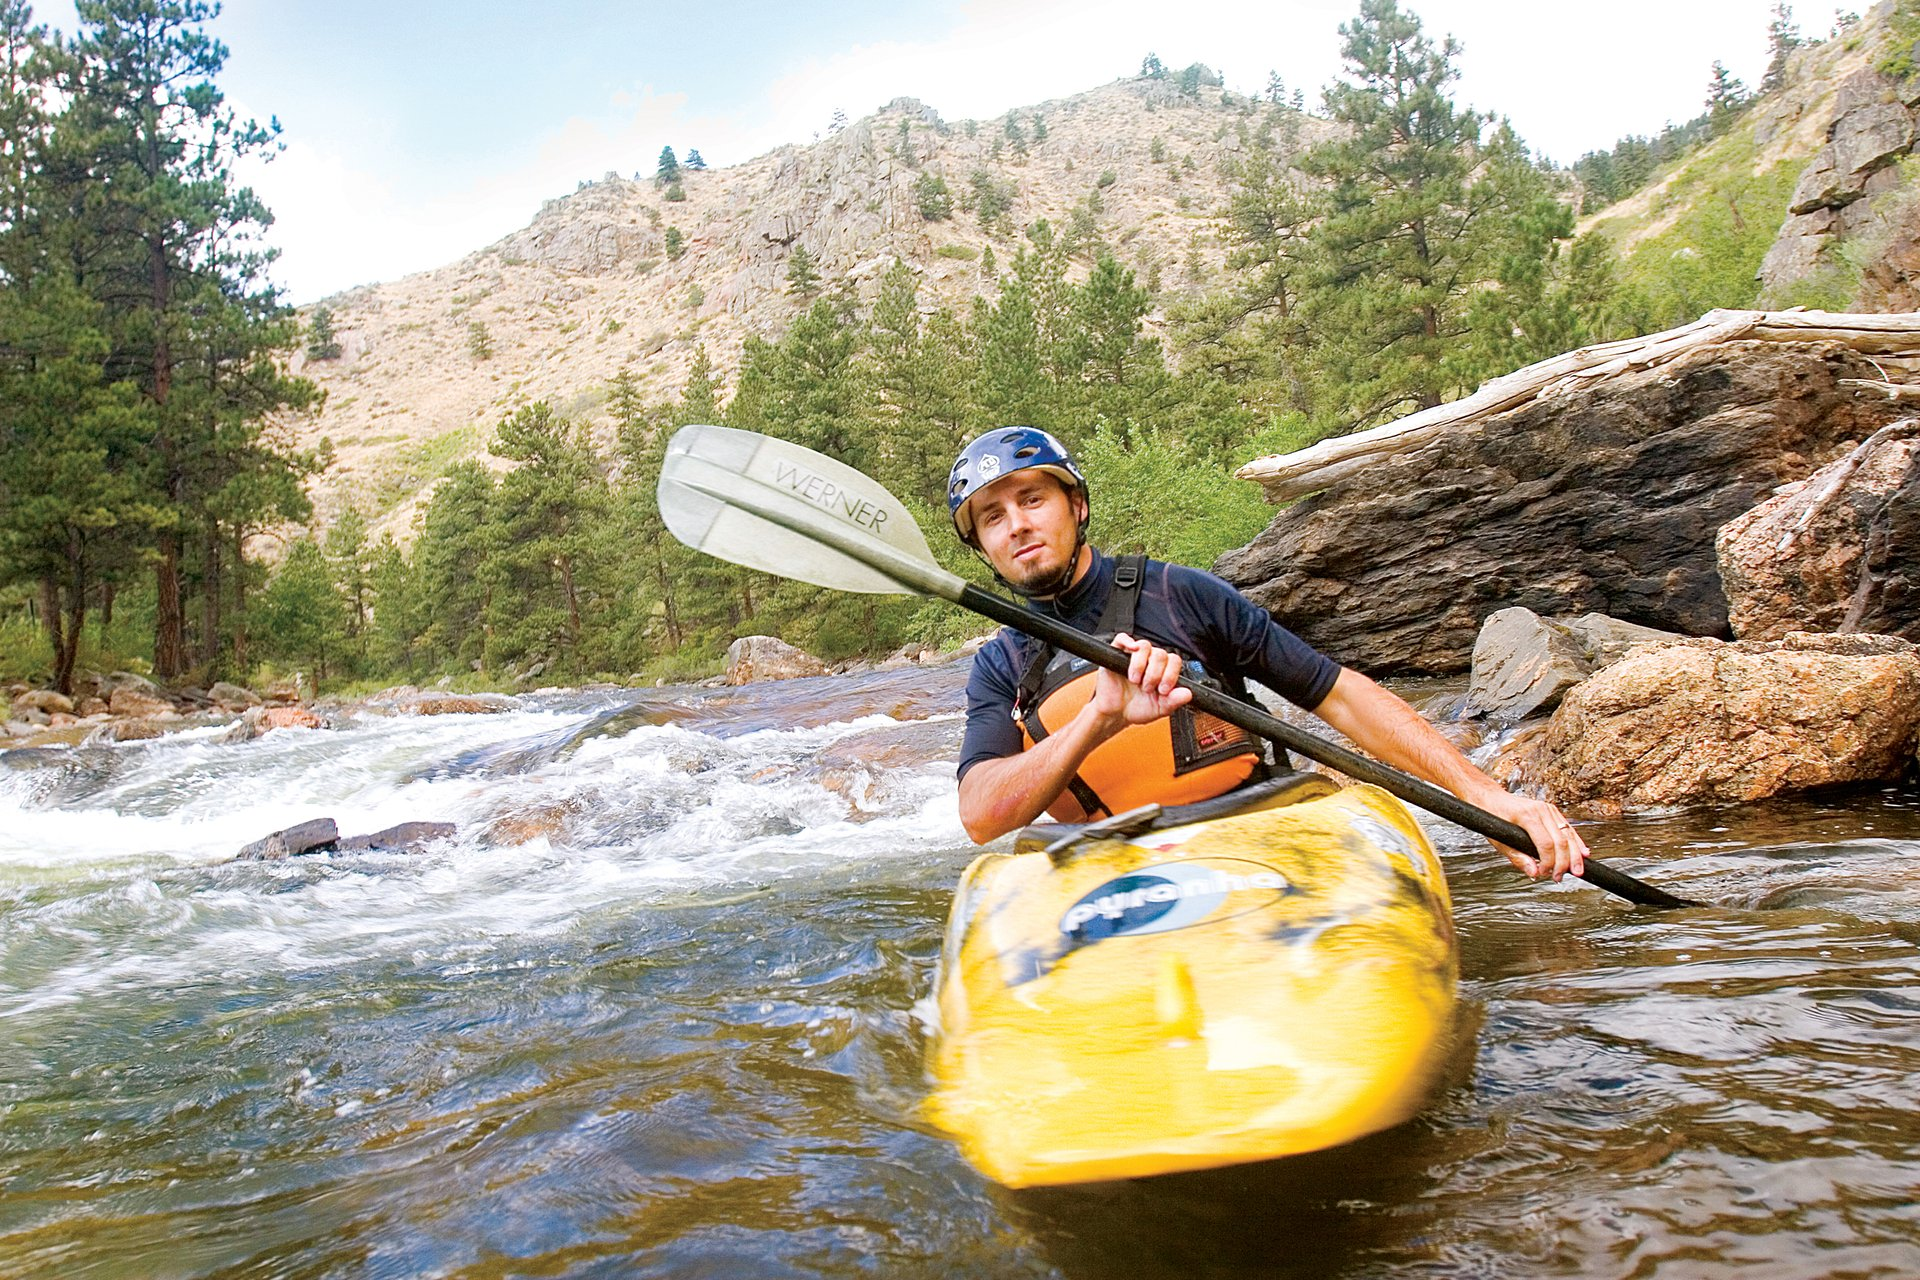 Kayaking and paddling the Cache la Poudre River near Fort Collins 2020